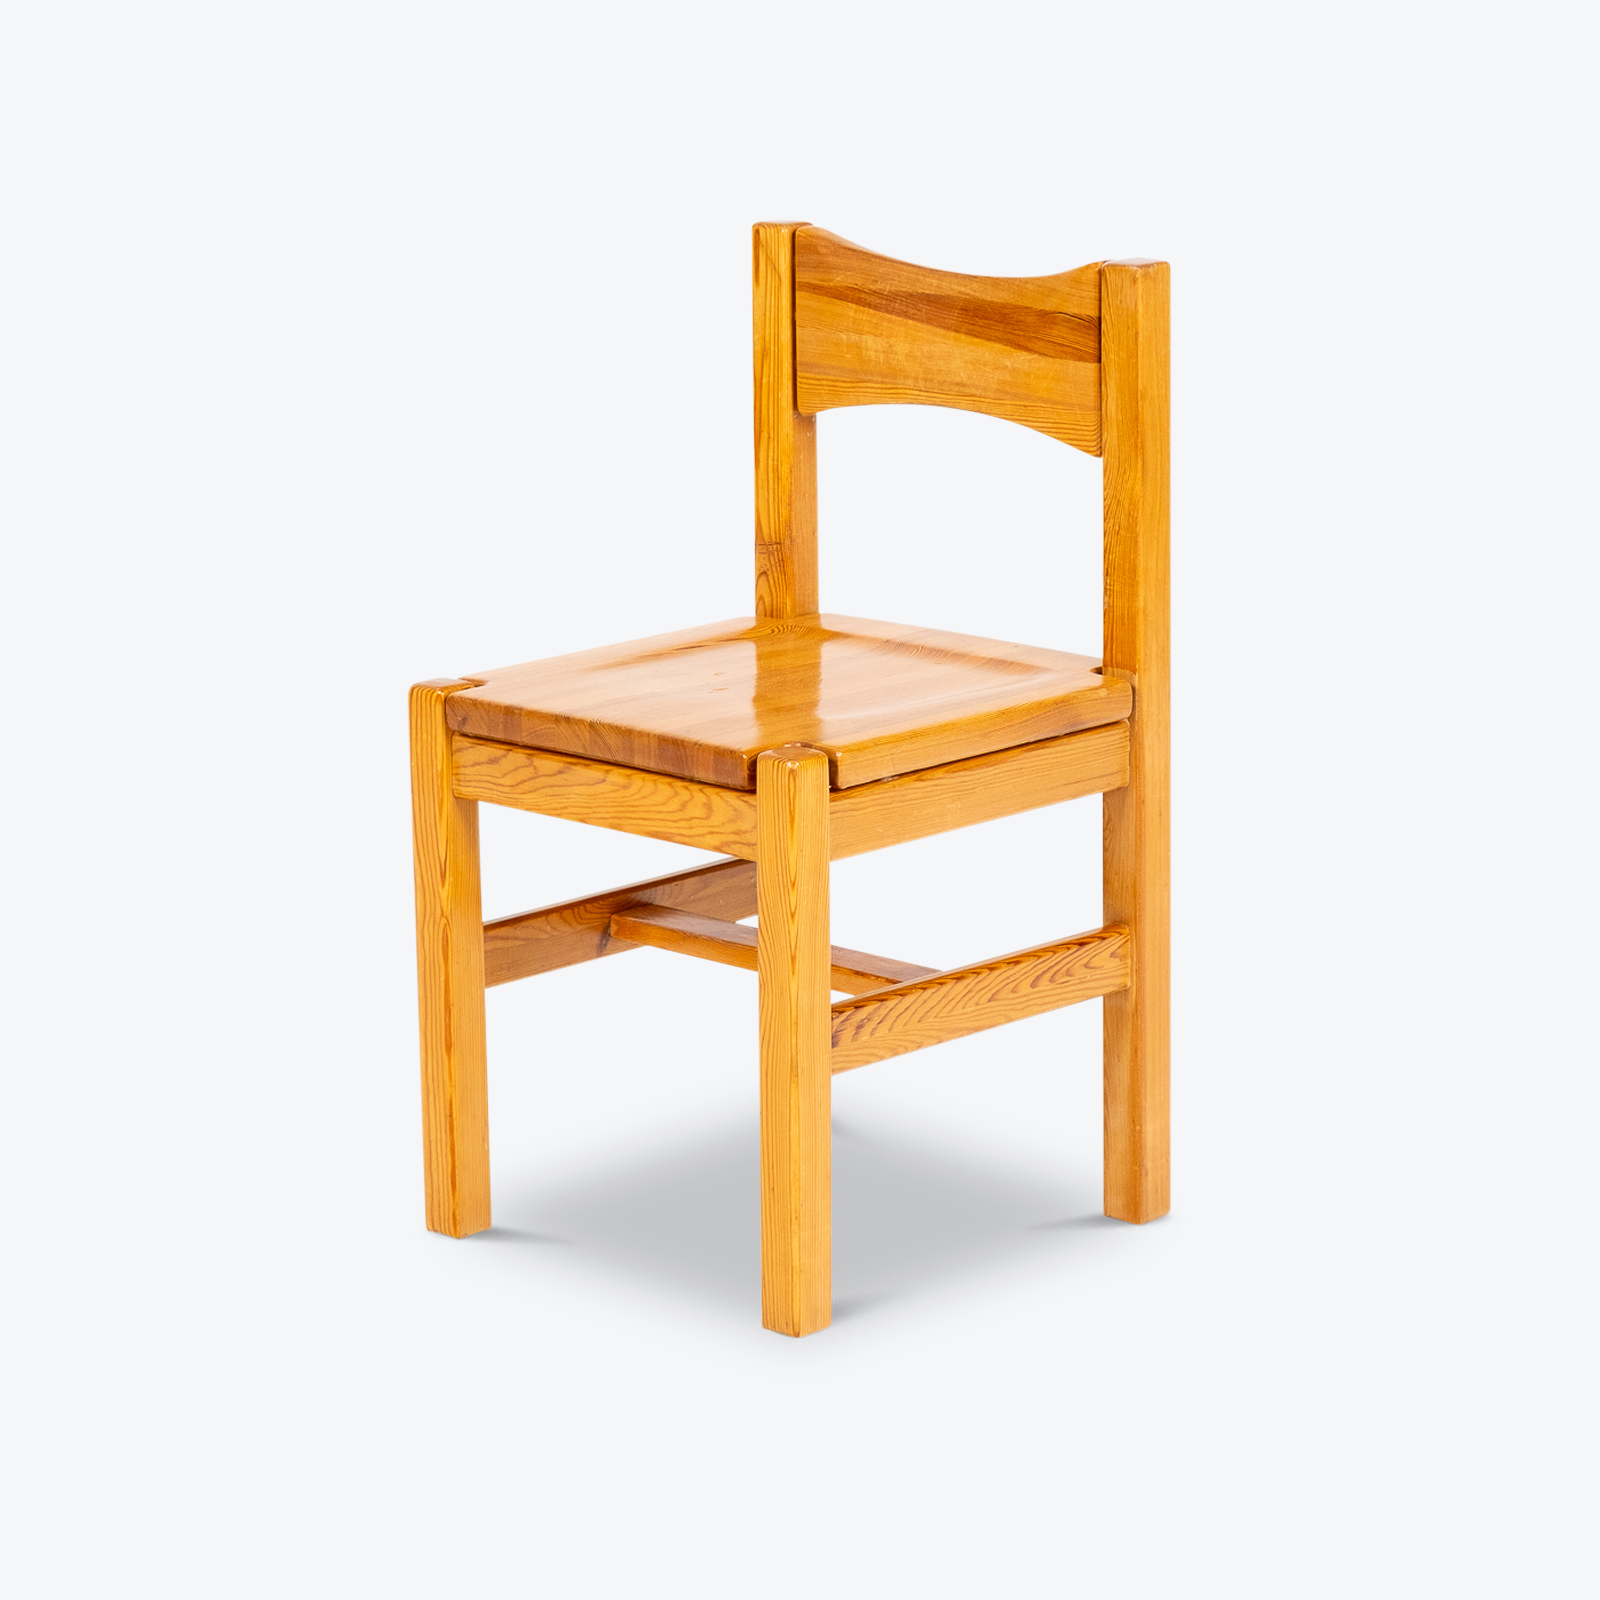 Set Of 10 Dining Chairs By Ilmari Tapiovaara For For Laukaan Puu Oy, 1960's, Finland 1 Hero